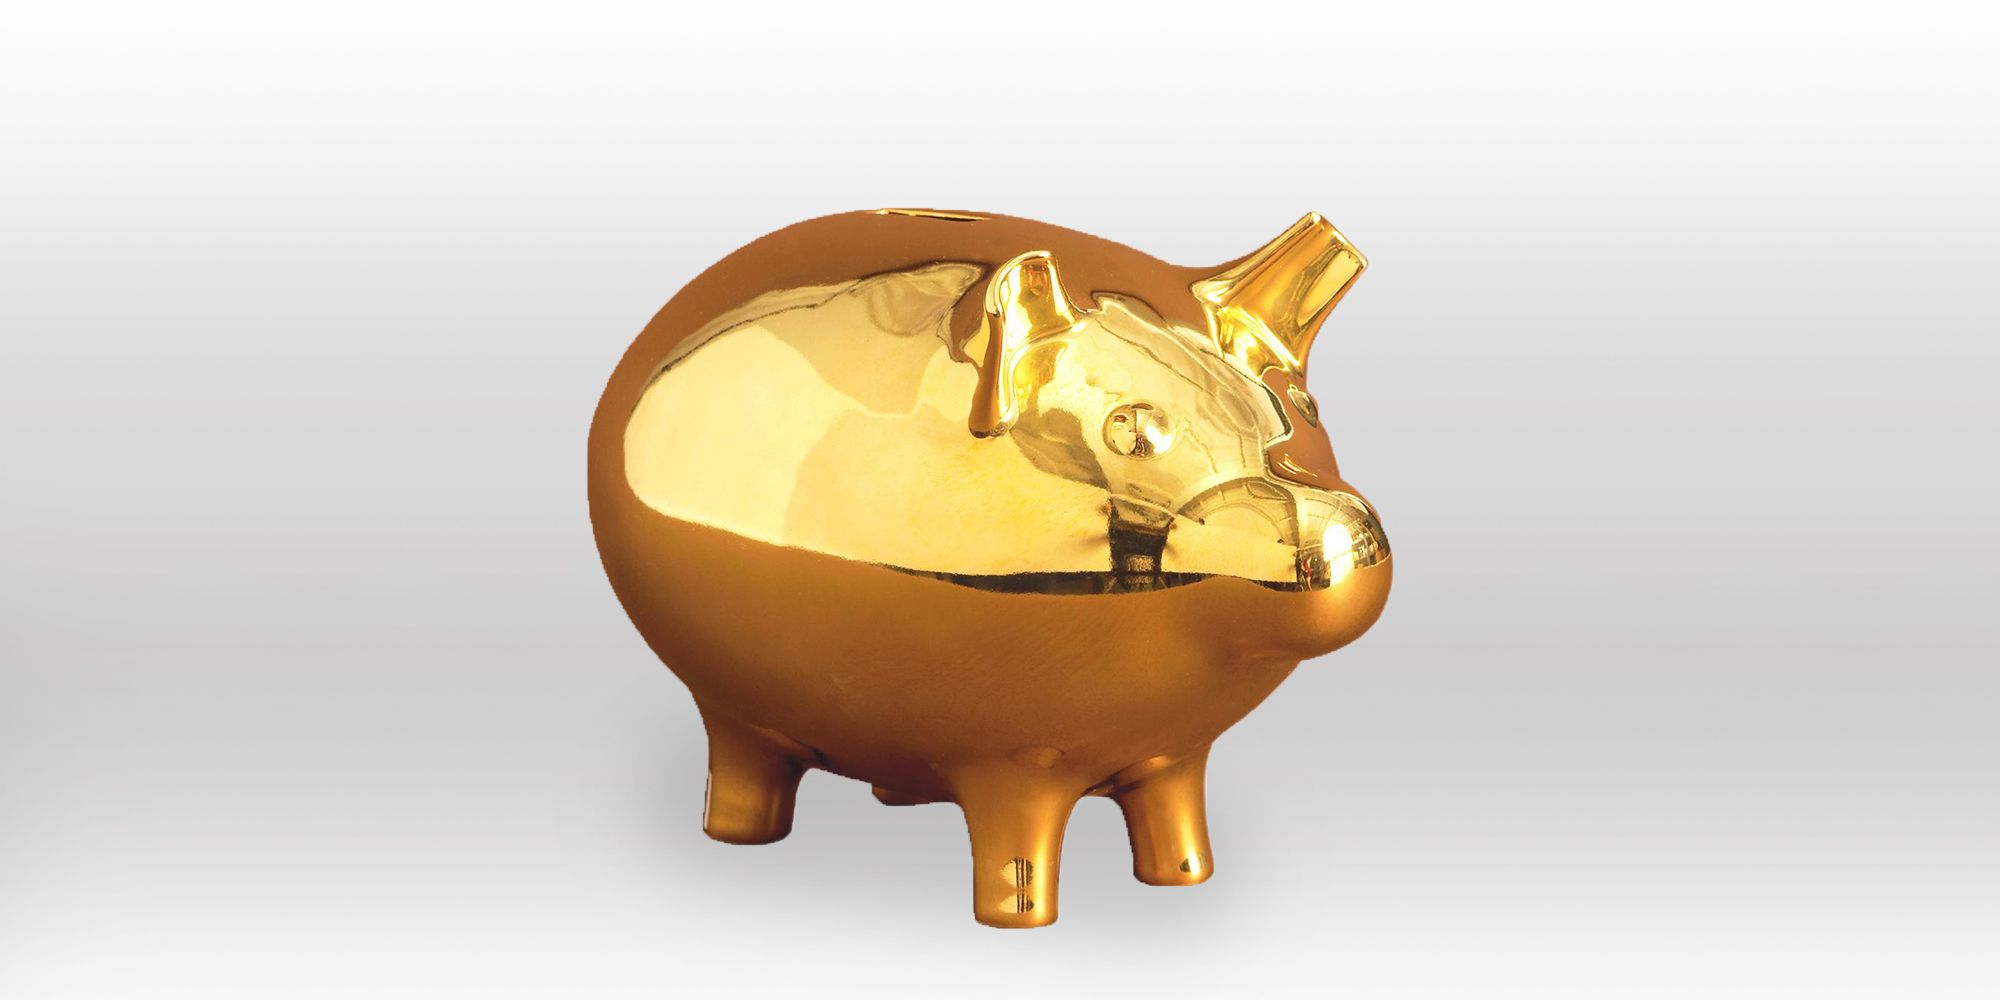 9 best piggy banks for adults in 2018 unique coin and piggy banks for adults